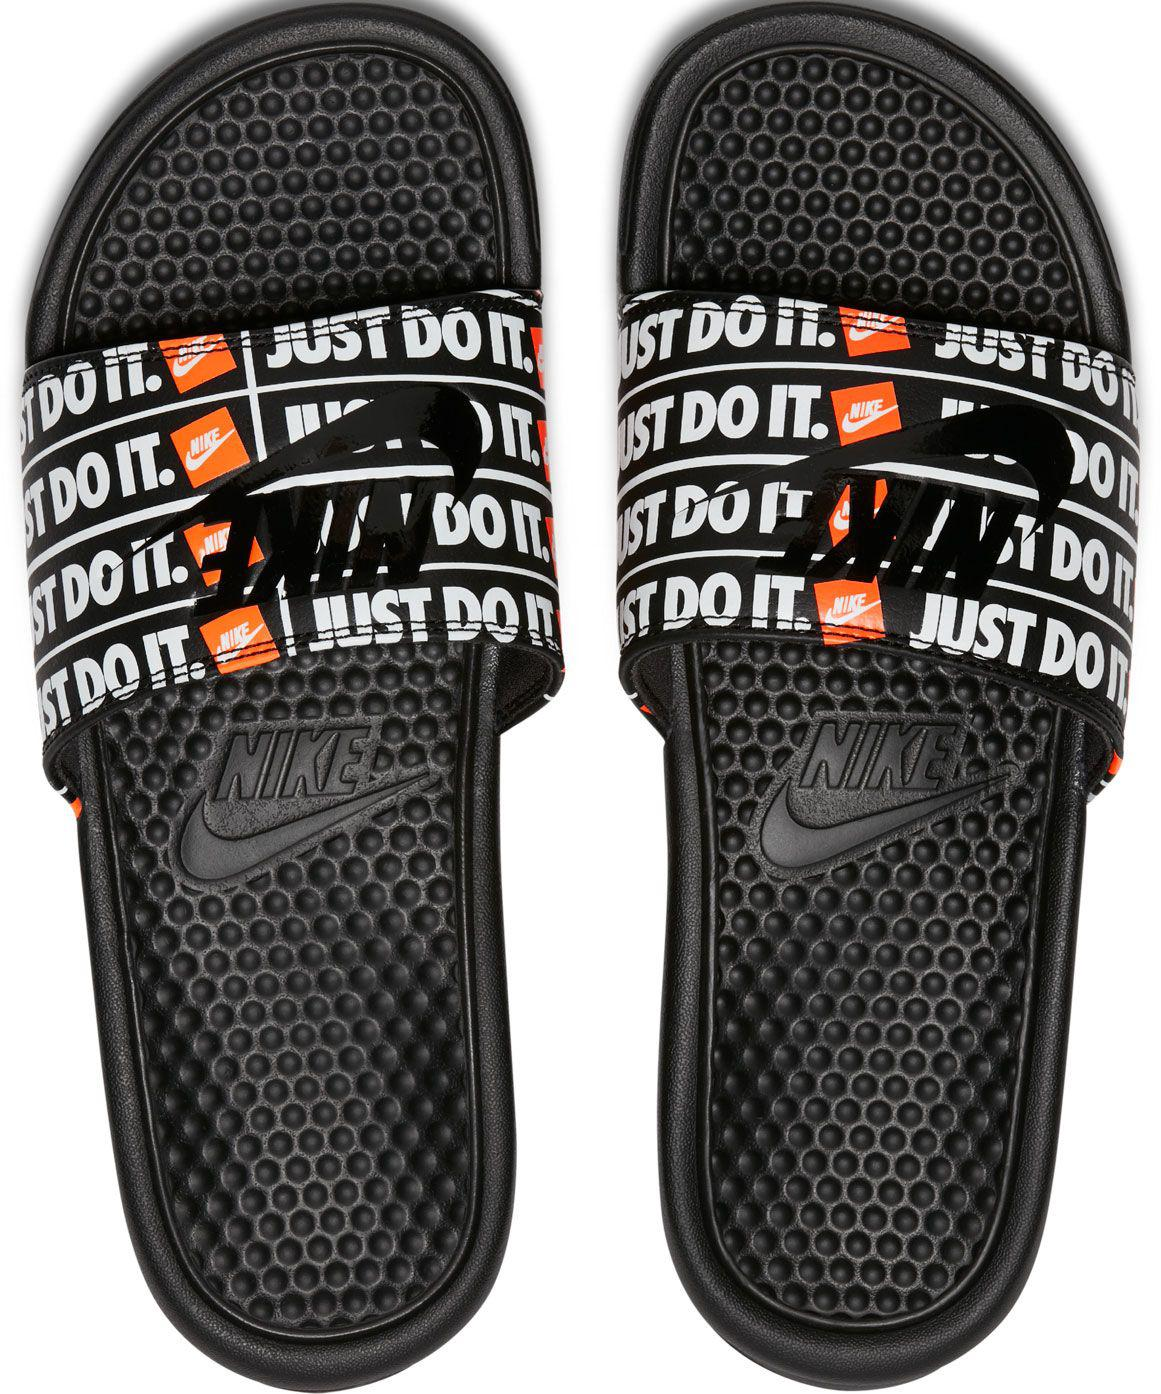 8479f32e84b6 Lyst - Nike Enassi Just Do It Print Slides in Black for Men